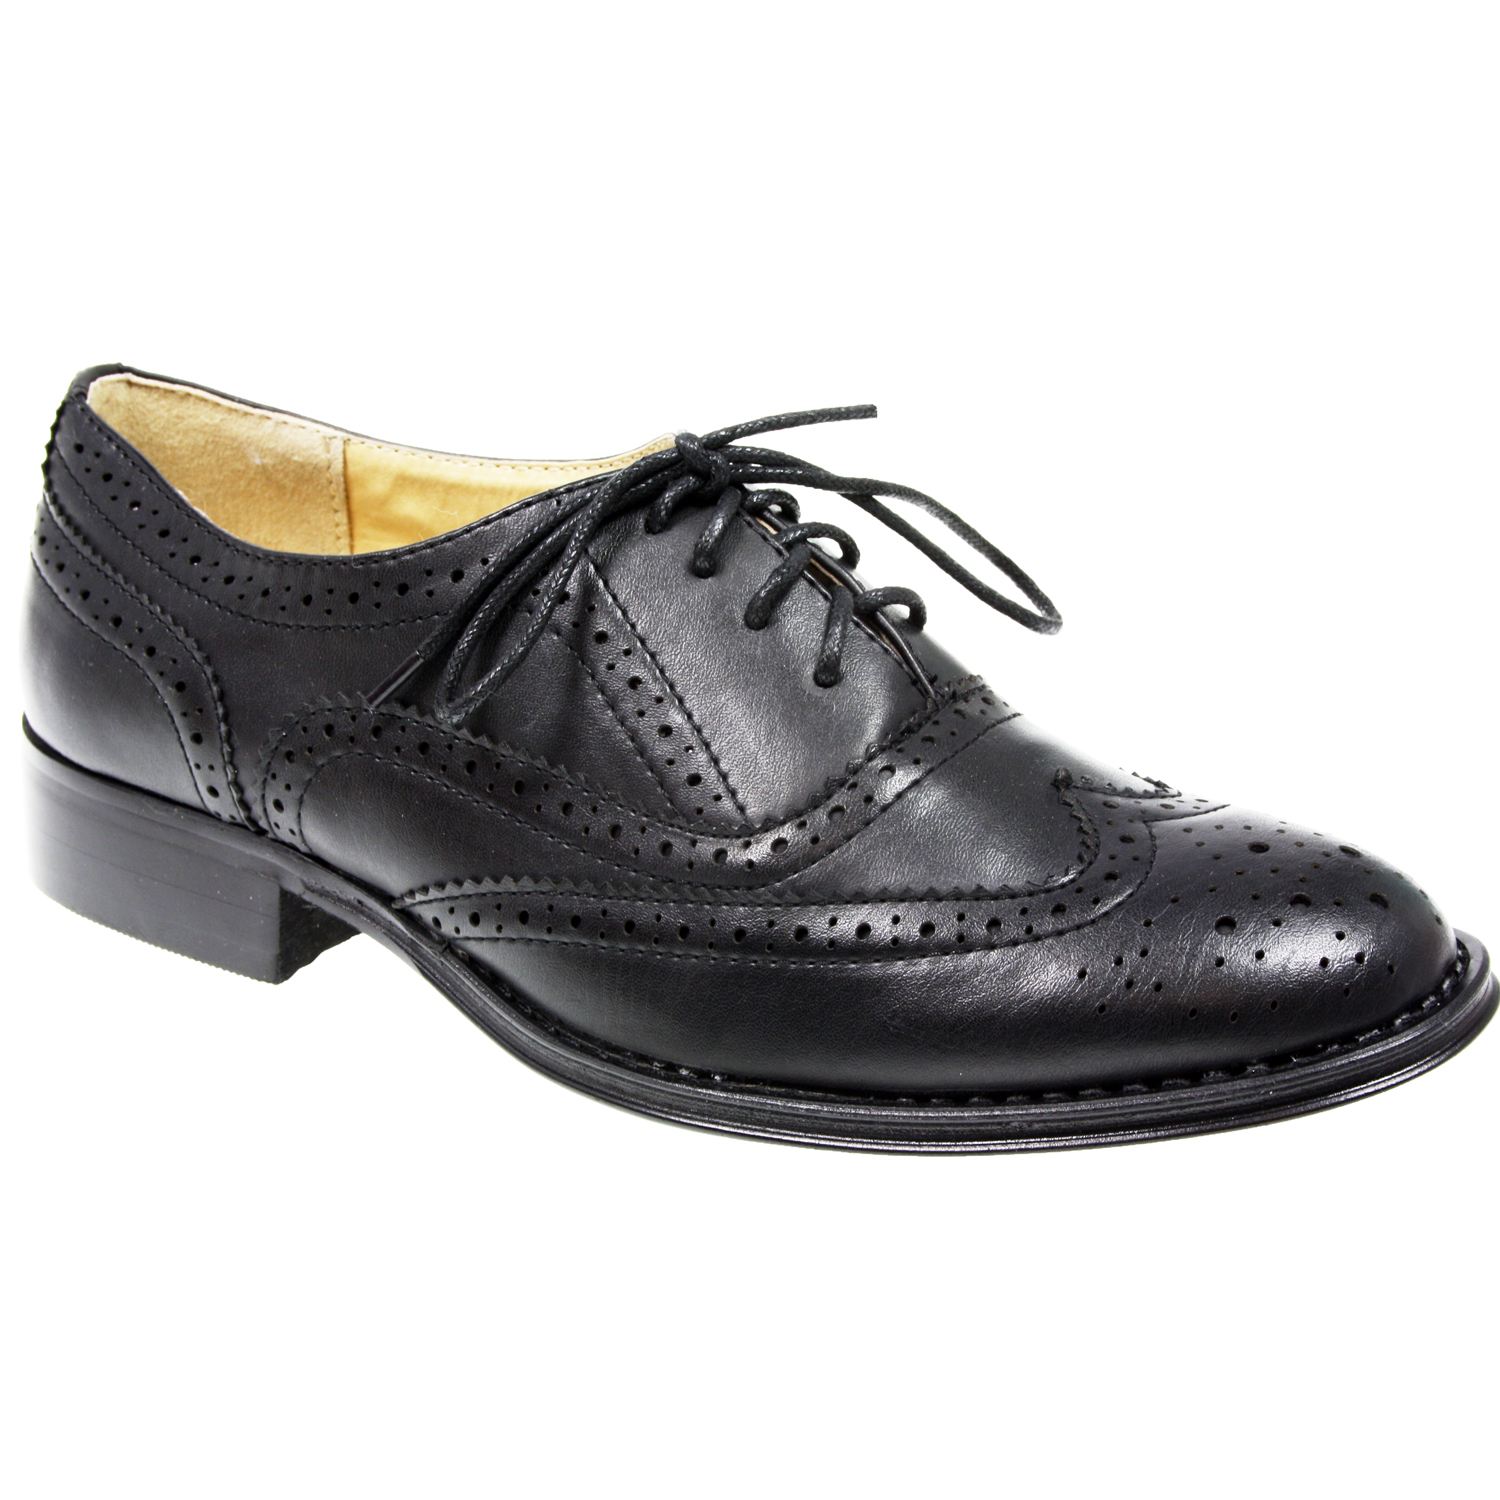 WOMENS LADIES LACE UP FLAT OFFICE FORMAL SCHOOL OXFORD ...